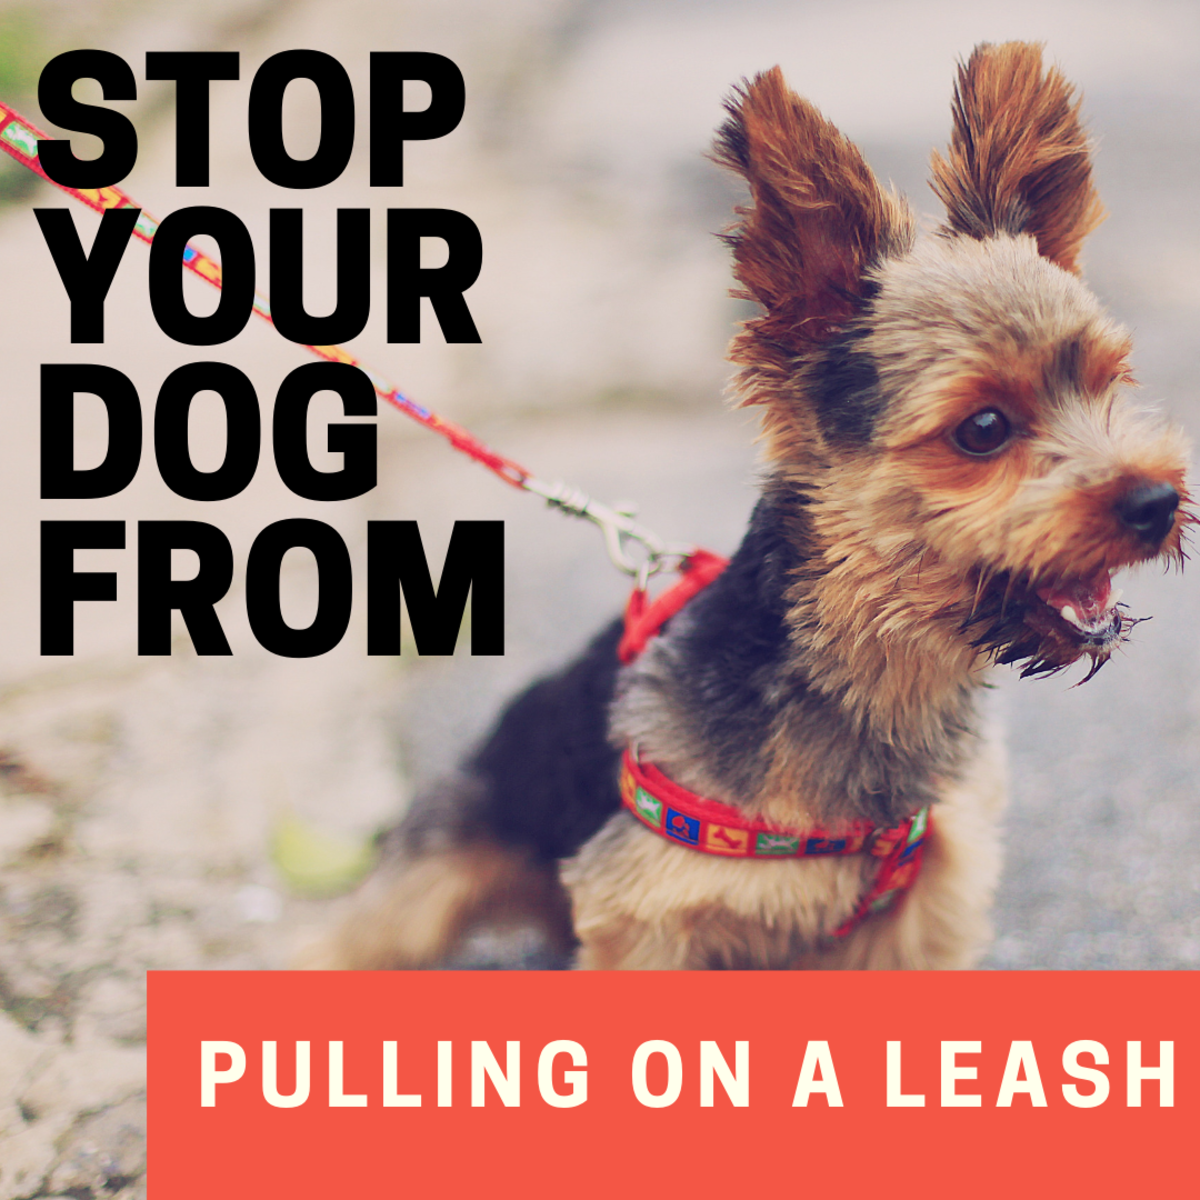 How to Stop a Dog From Pulling on the Leash